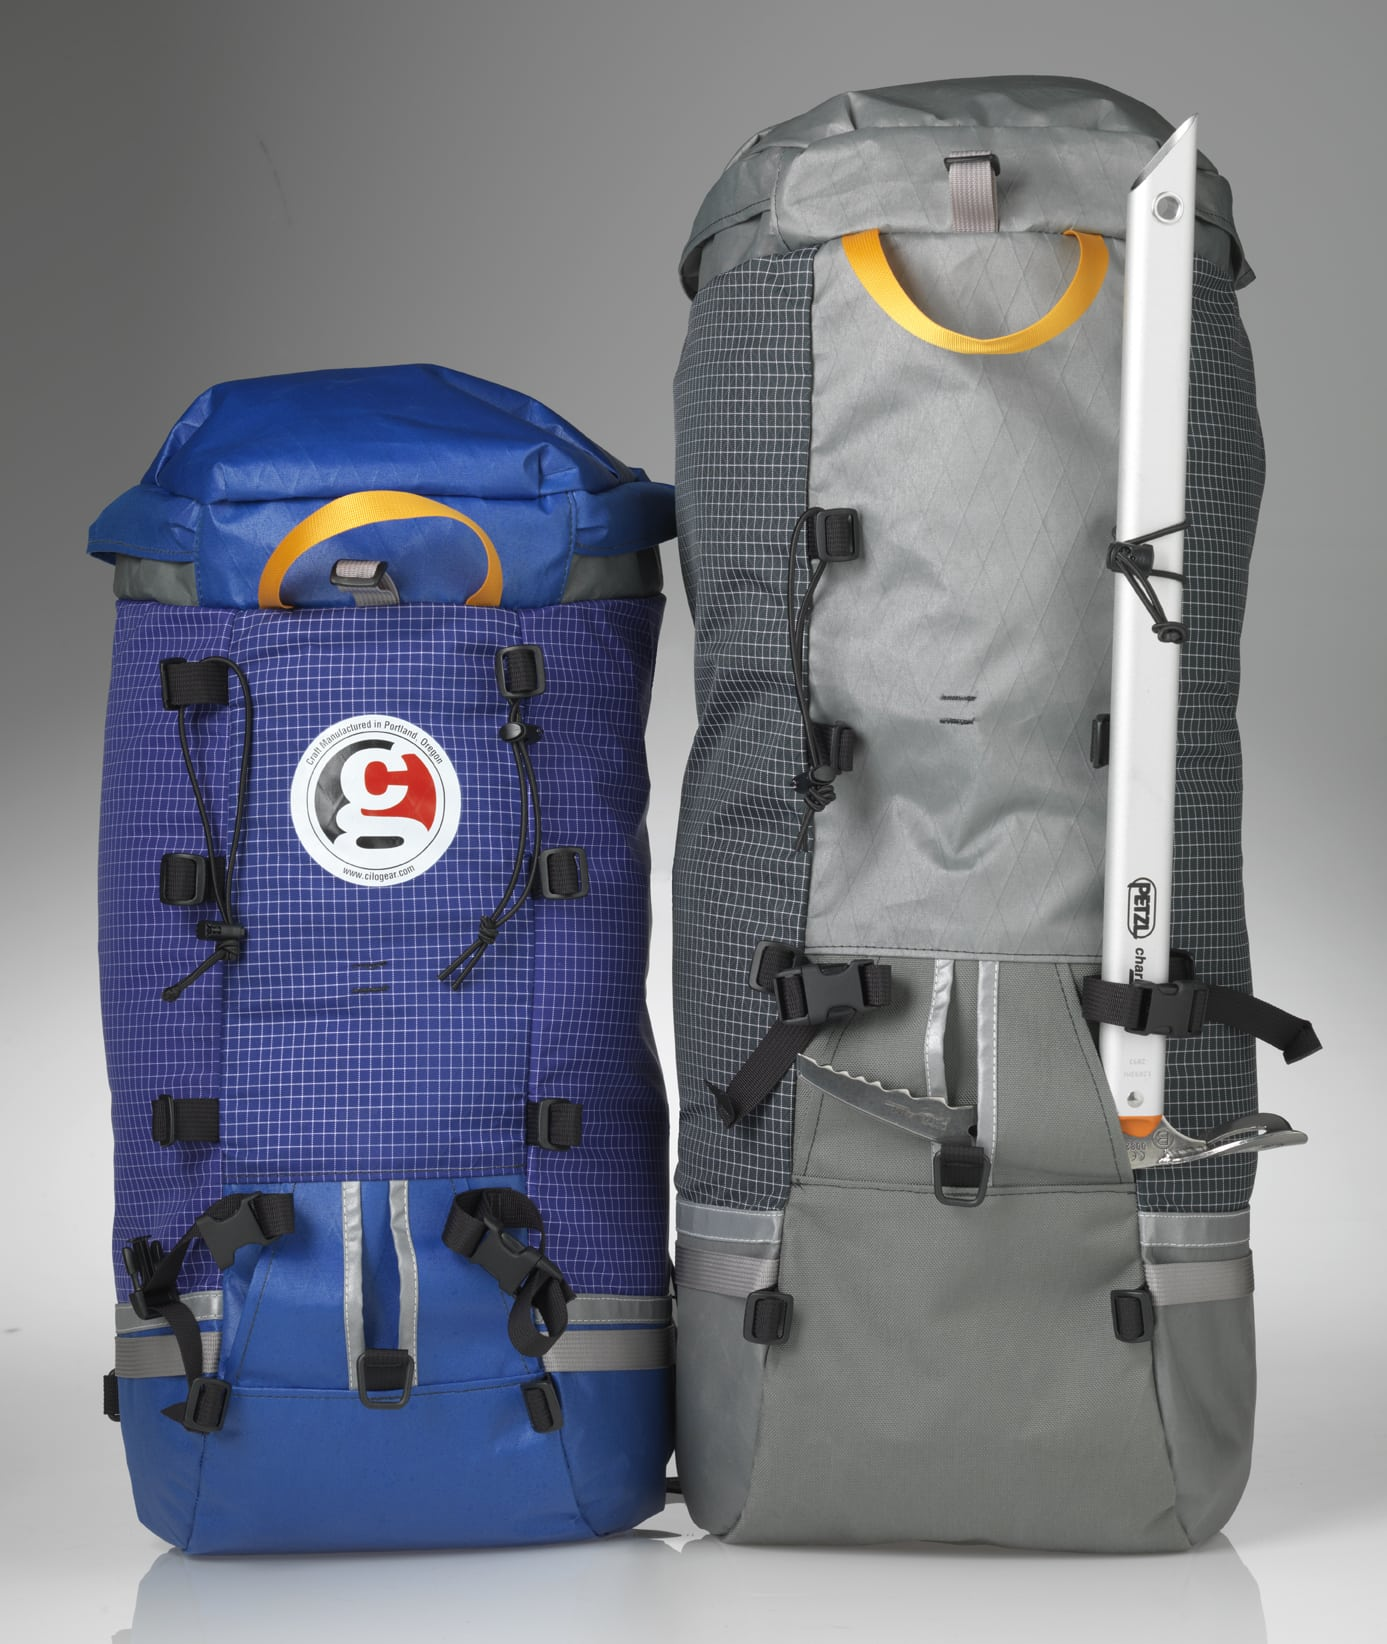 Two ski packs, one smaller and blue and one larger and gray.